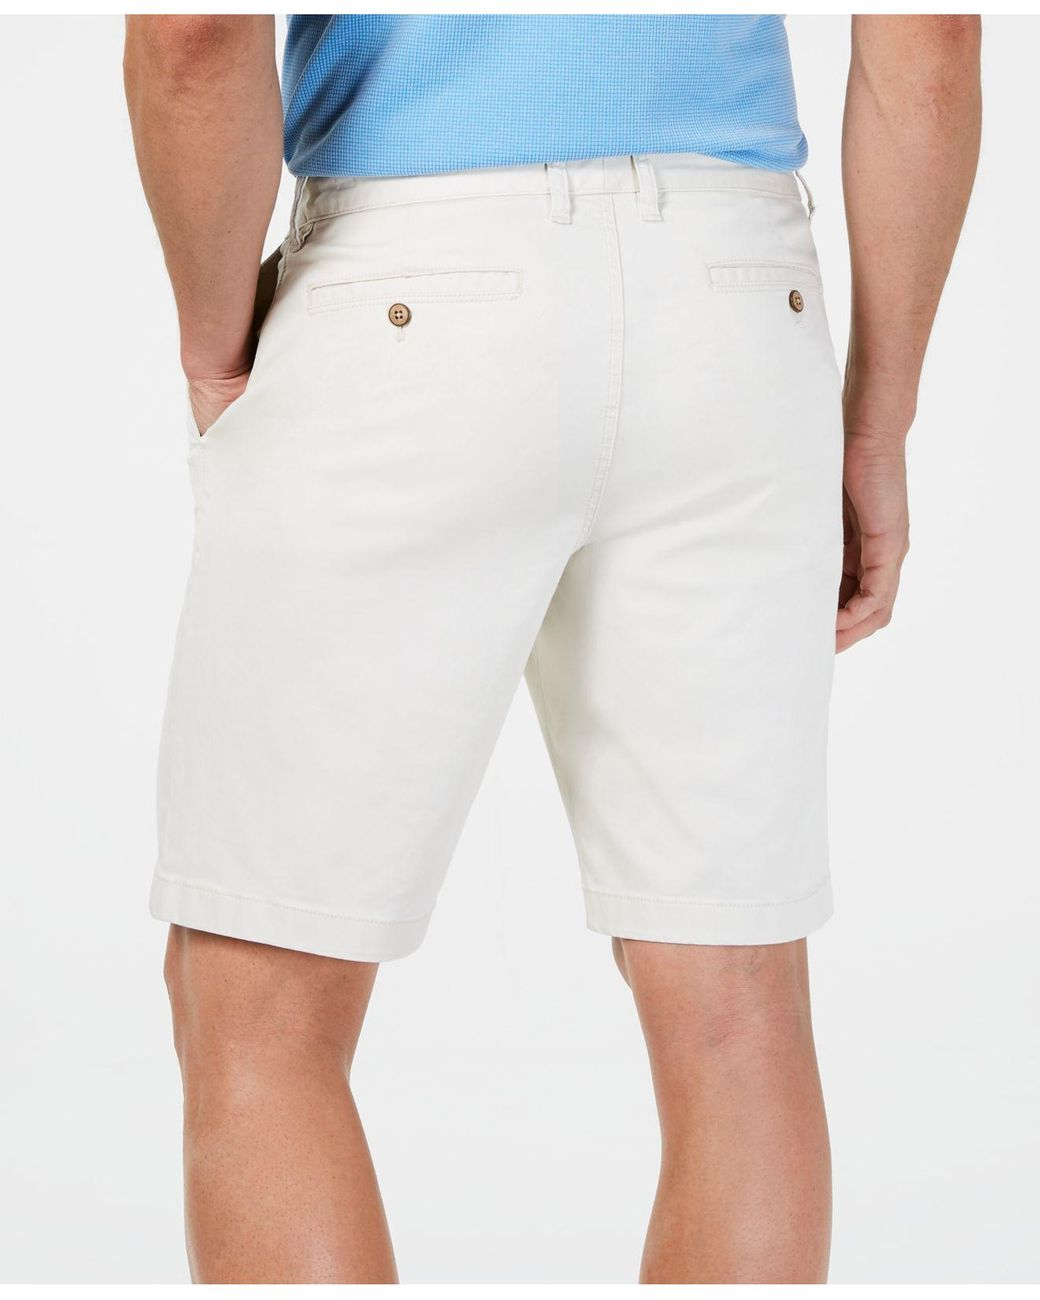 Tommy Bahama Boracay Shorts in Bleached Sand